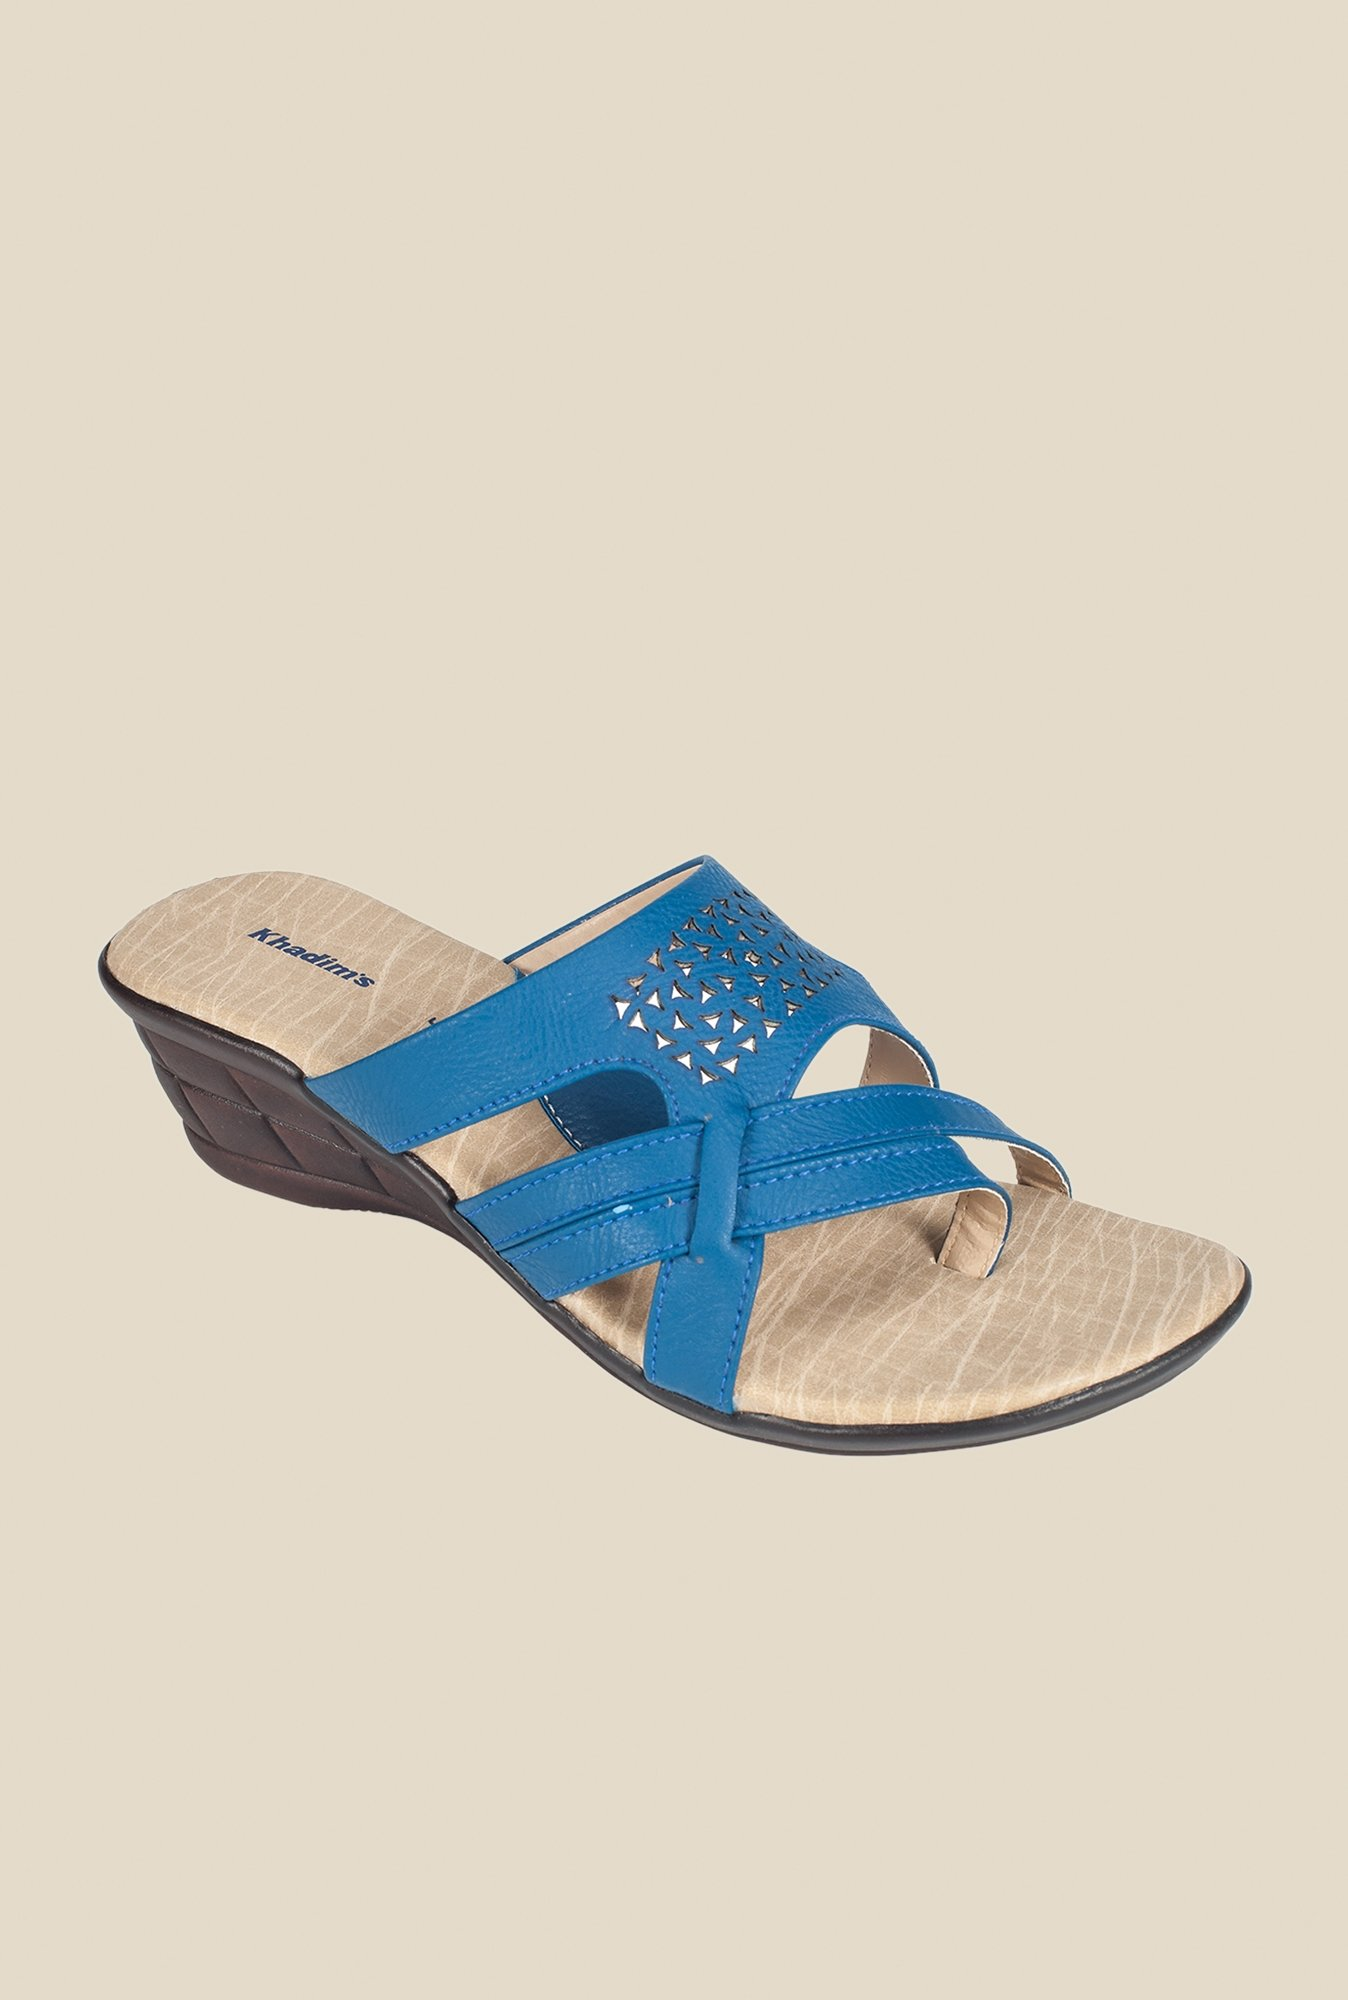 Khadim's Blue Wedge Heeled Sandals